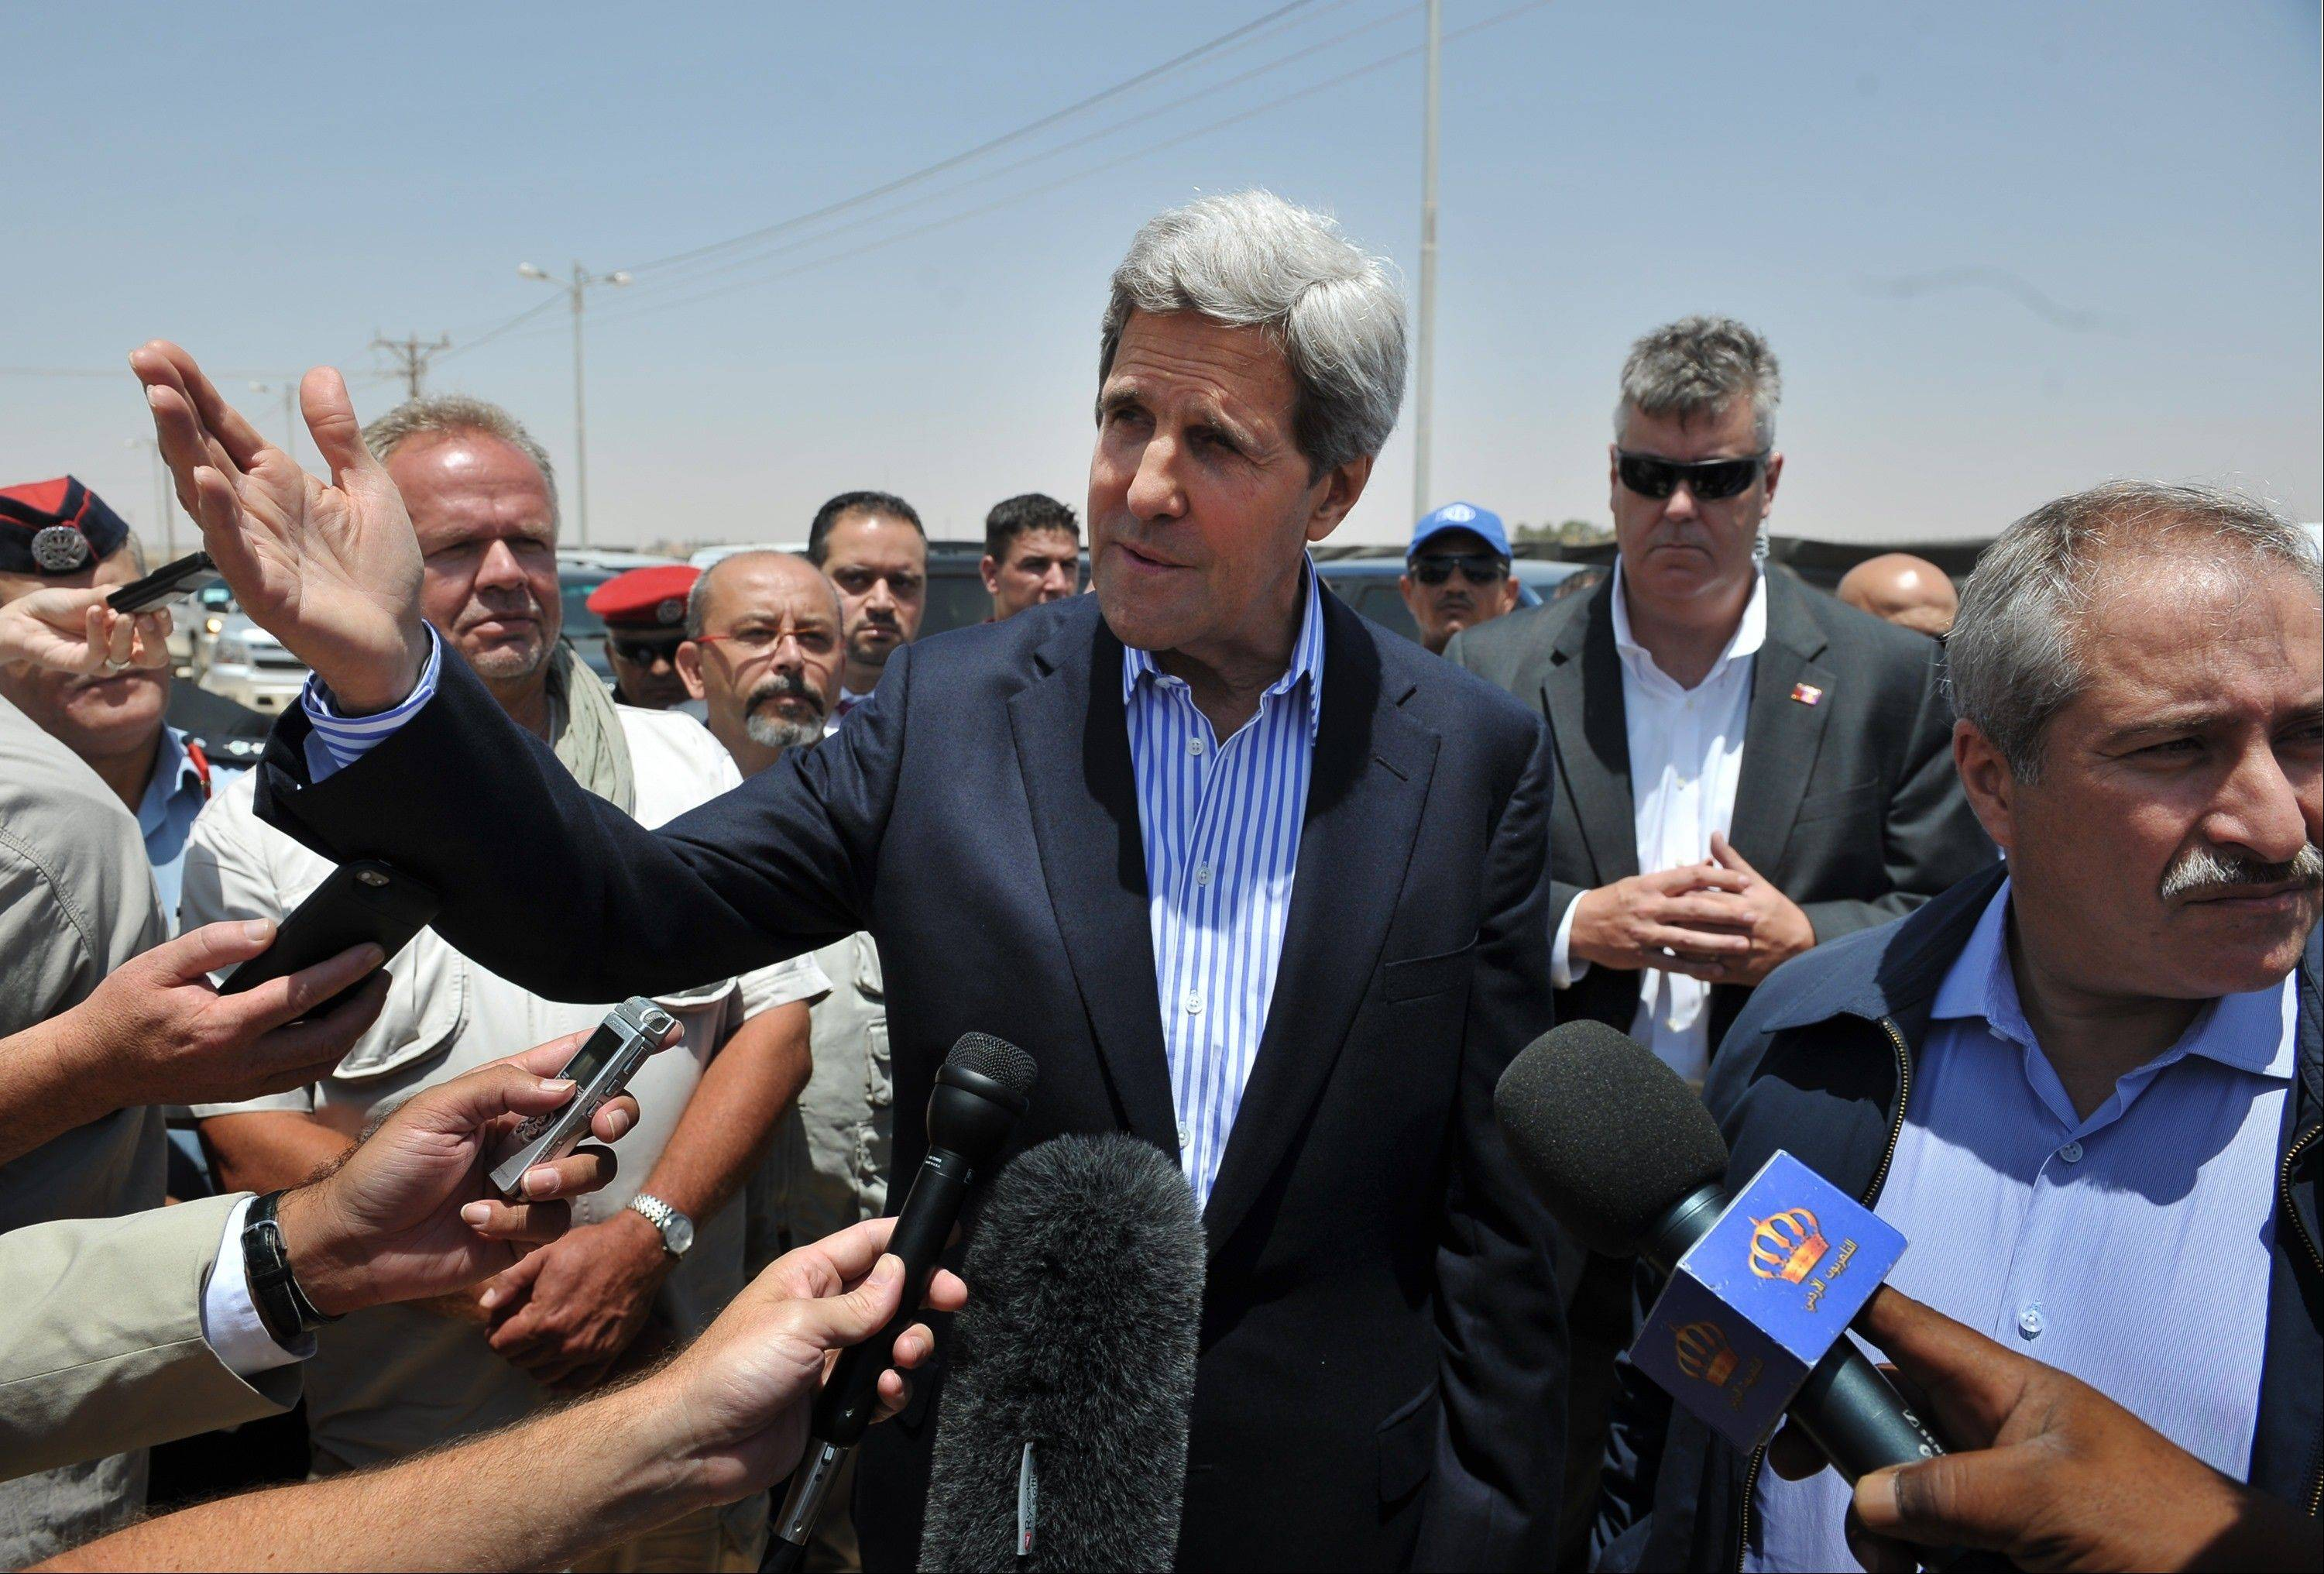 U.S. Secretary of State John Kerry visits the Zaatari refugee camp in Mafraq, Jordan, Thursday, July 18, 2013. Angry Syrian refugees urged Kerry on Thursday to do more to help opponents of President Bashar Assad�s government, venting frustration at perceived inaction on their behalf.